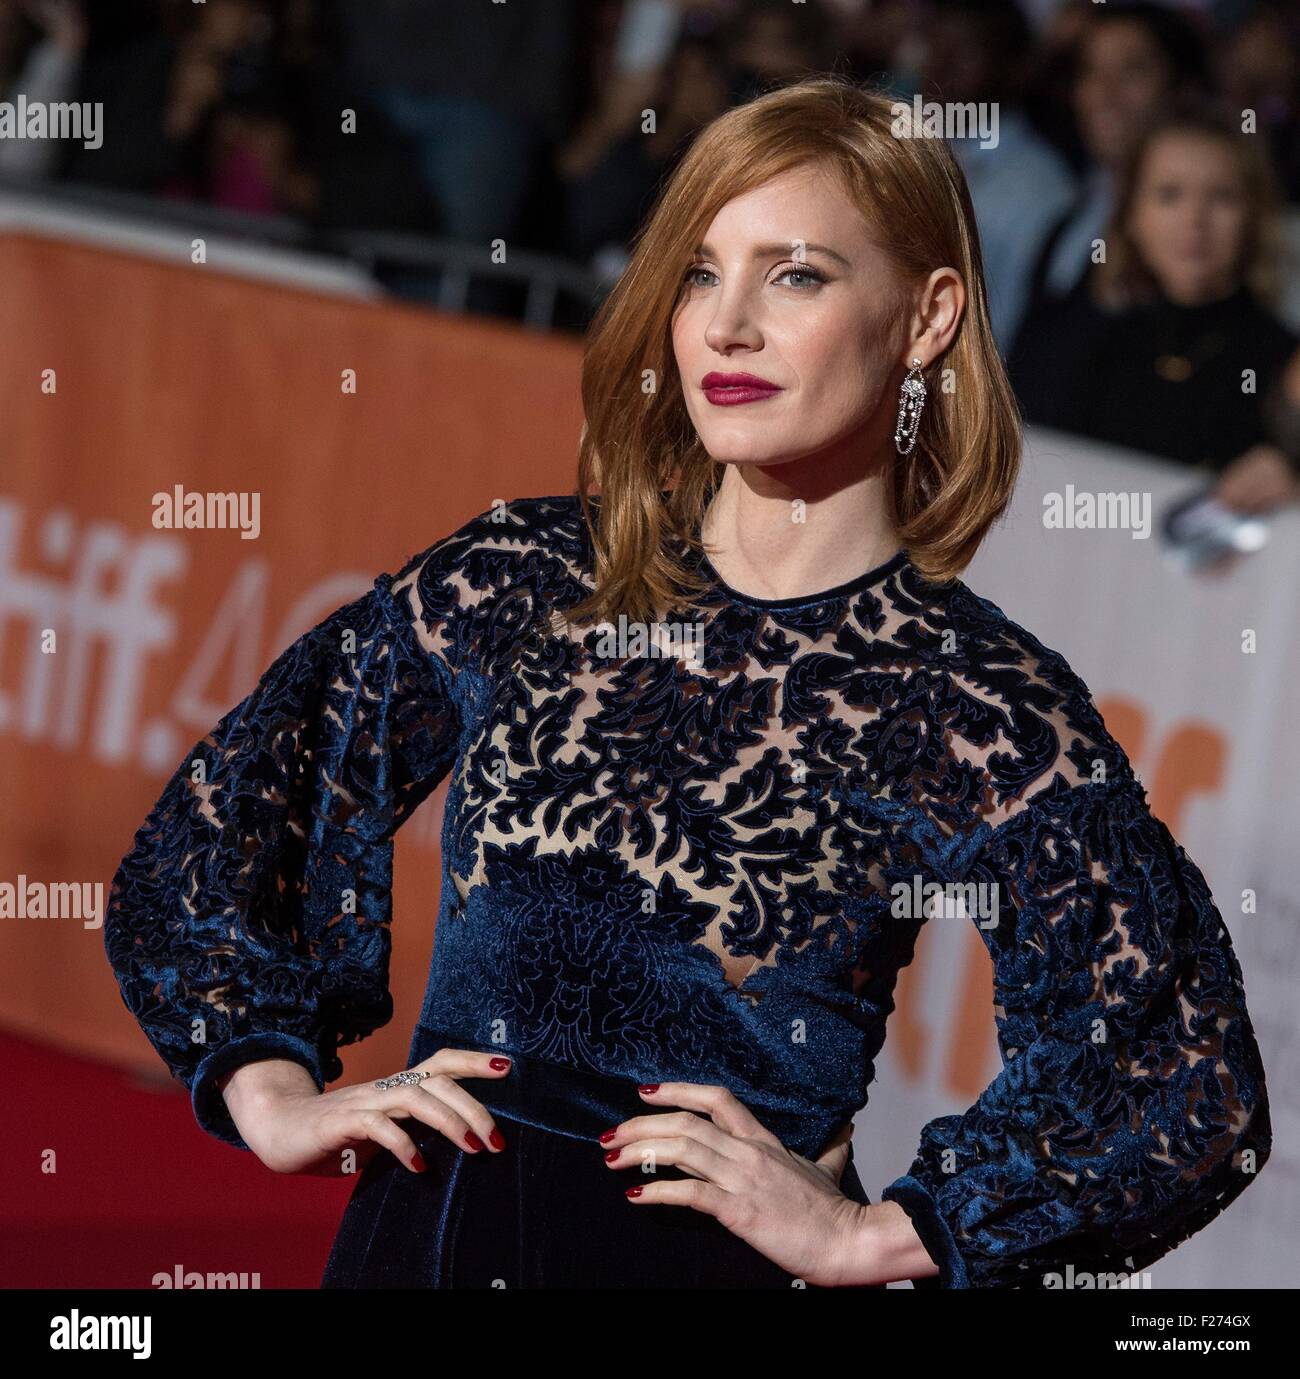 Actress Jessica Chastain attends the world premiere for The Martian at the Toronto International Film Festival at Stock Photo